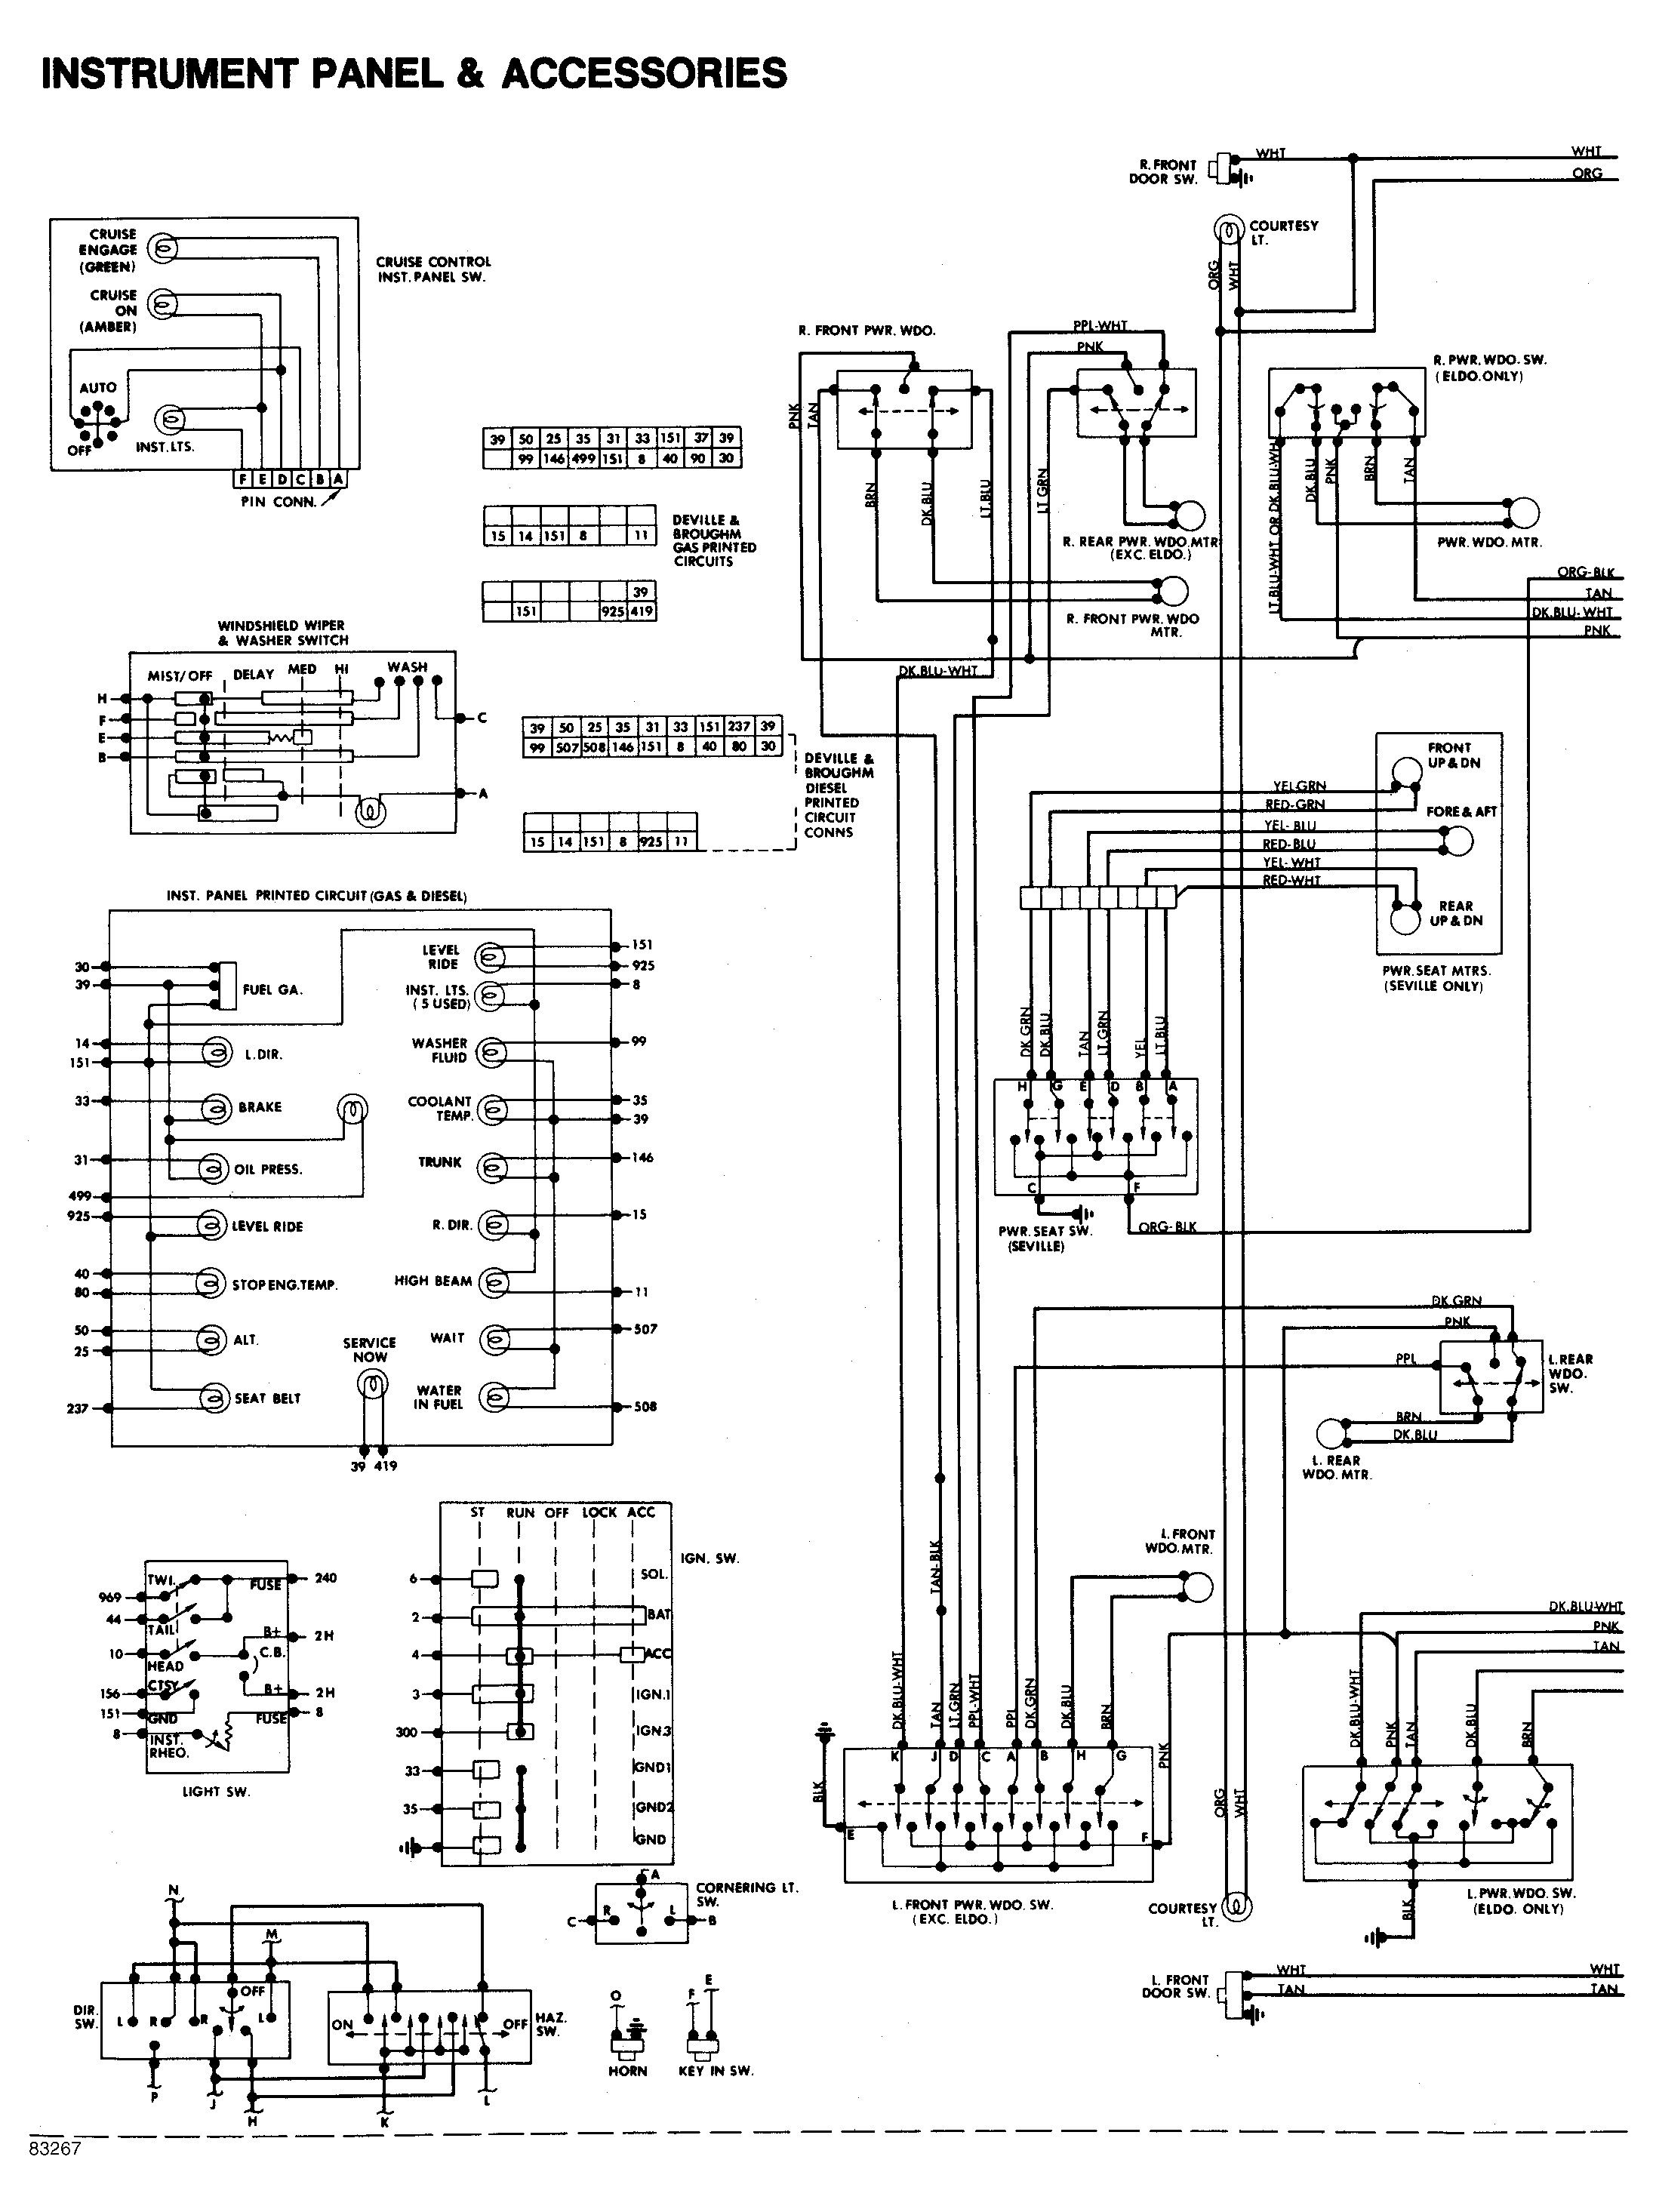 1972 scout ii wiring diagram wiring diagram third level 1954 international trucks wiring diagram 1972 international scout wiring diagram [ 2194 x 2931 Pixel ]